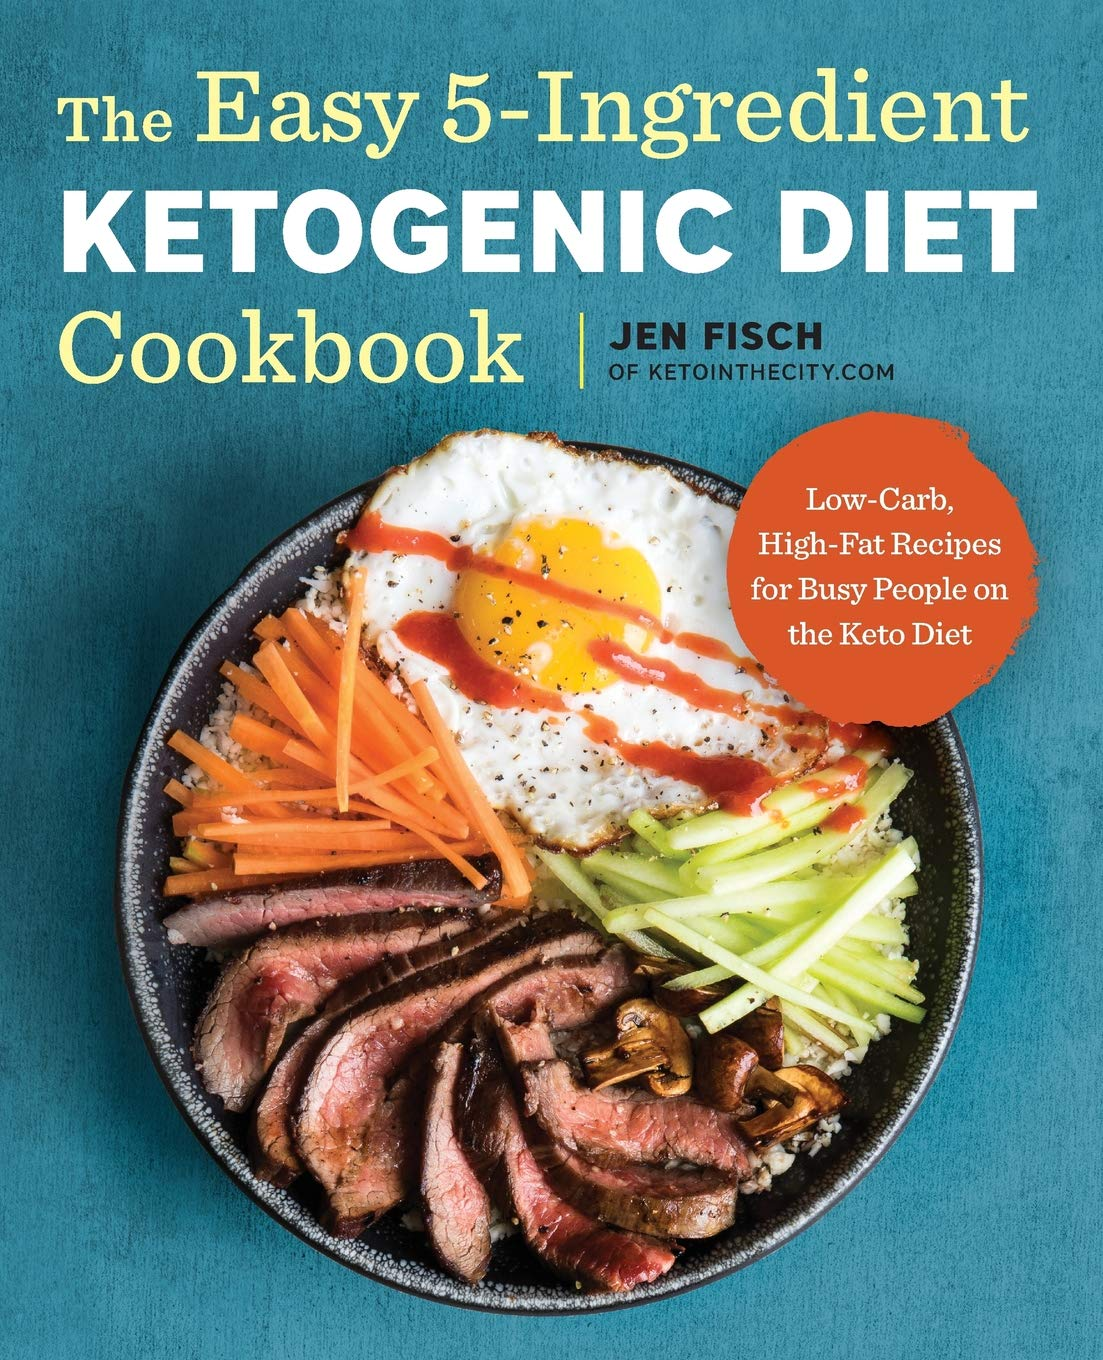 The Easy 5 Ingredient Ketogenic Diet Cookbook Low Carb High Fat Recipes For Busy People On The Keto Diet Fisch Jen 9781939754448 Amazon Com Books